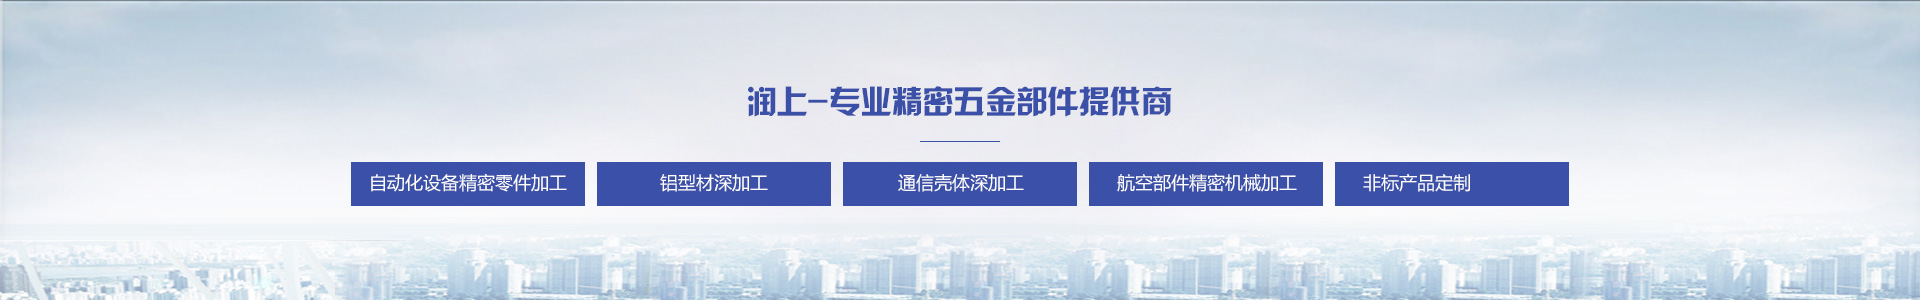 http://www.runsuntech.com.cn/data/upload/201912/20191225160014_757.jpg